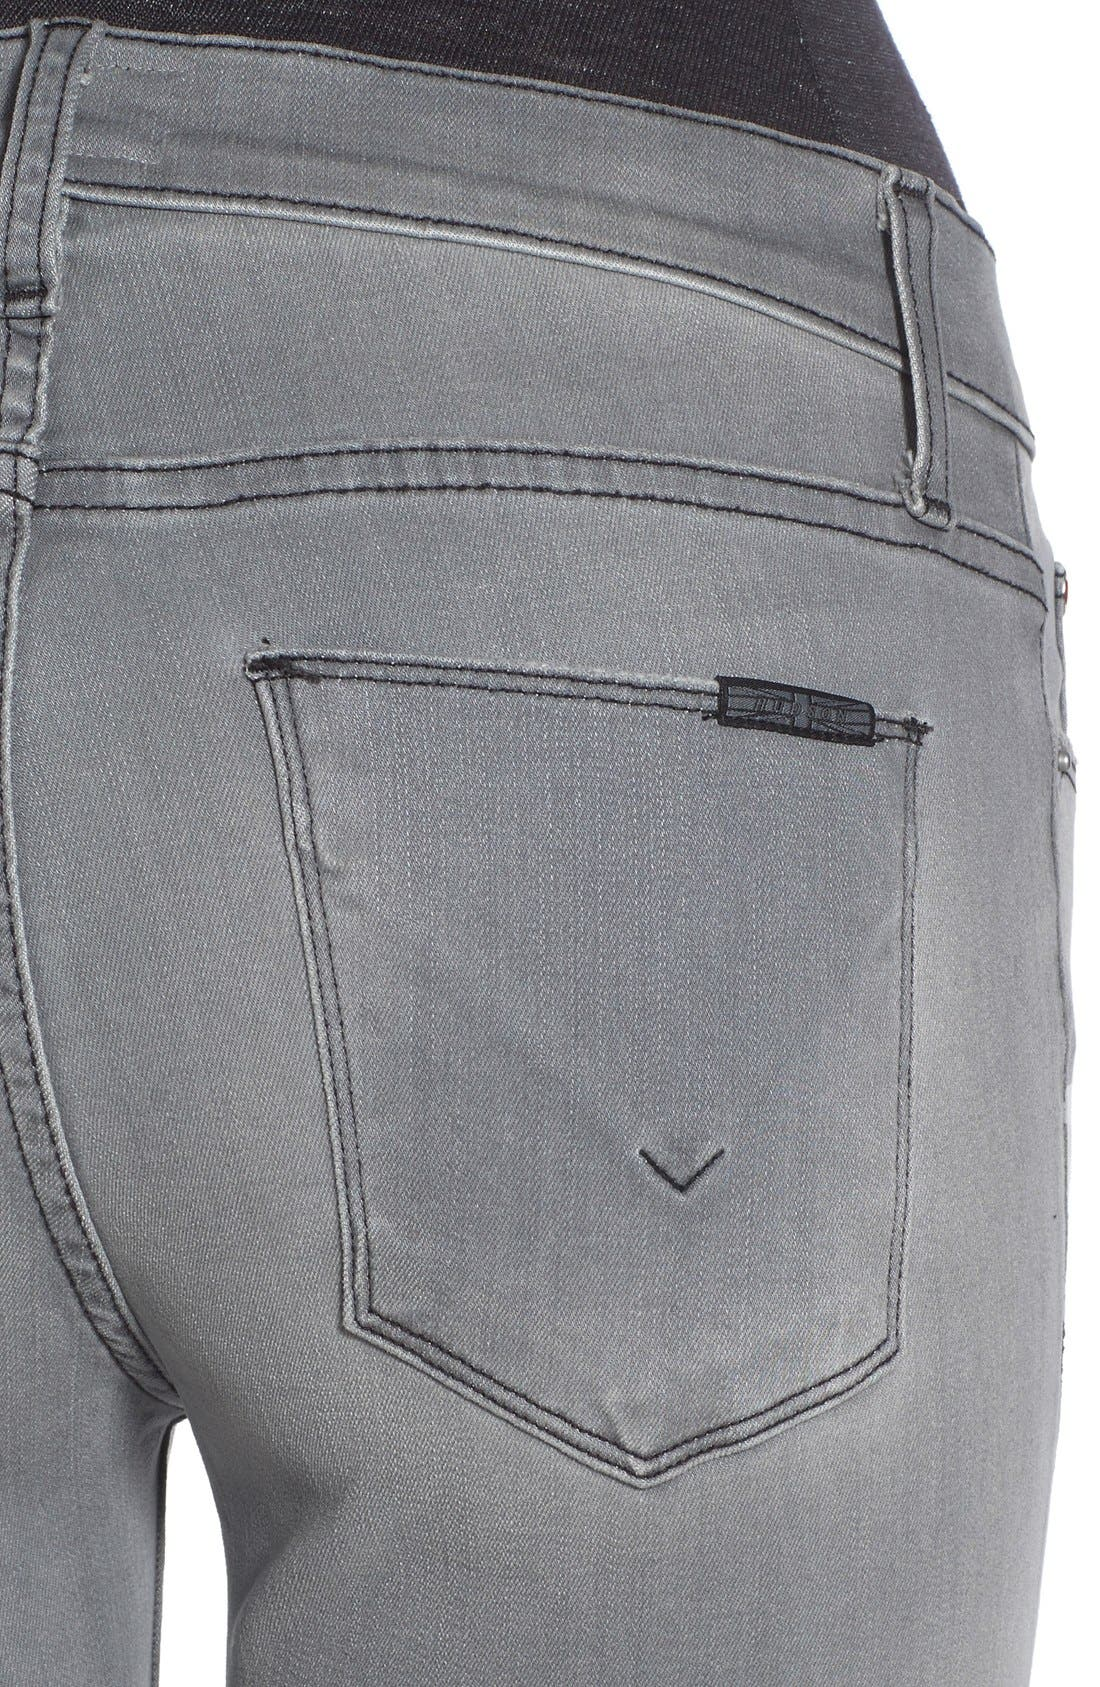 'Nico' Super Skinny Jeans,                             Alternate thumbnail 8, color,